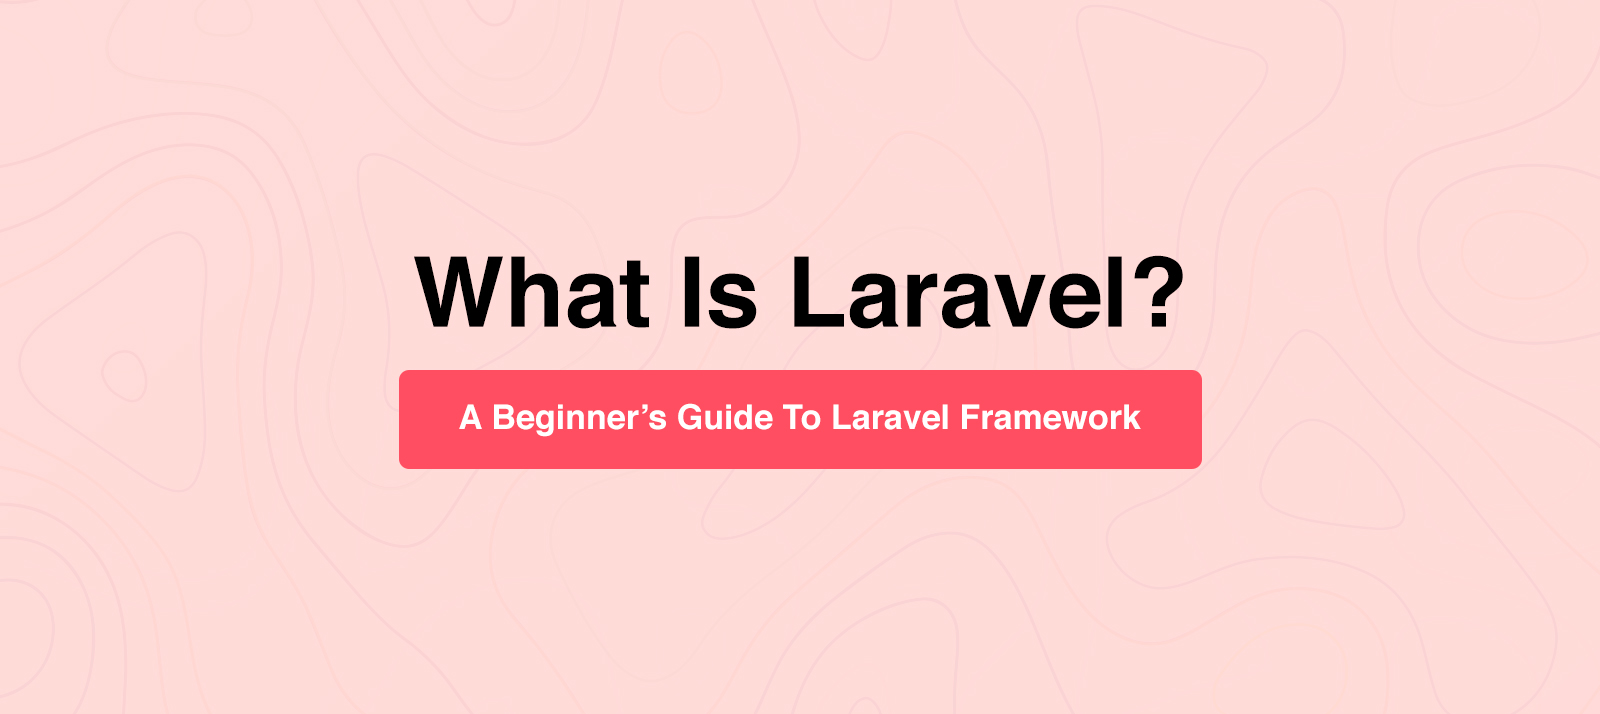 What Is Laravel? A Beginner's Guide To Laravel Framework